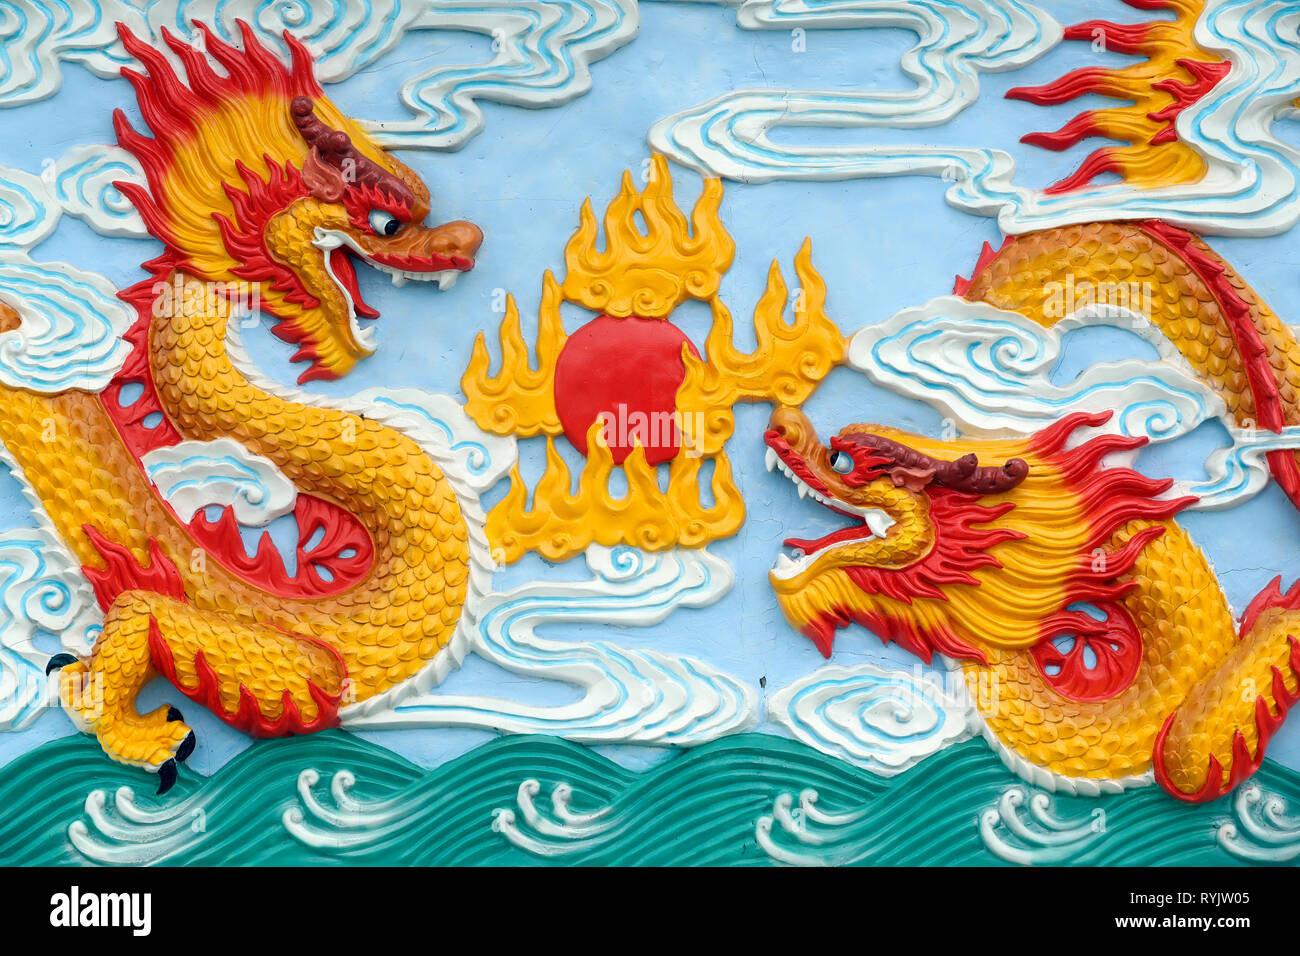 Huynh Dao buddhist pagoda.  Chinese dragon traditionally symbolize potent and auspicious powers. Sculpture.  Chau Doc. Vietnam. - Stock Image